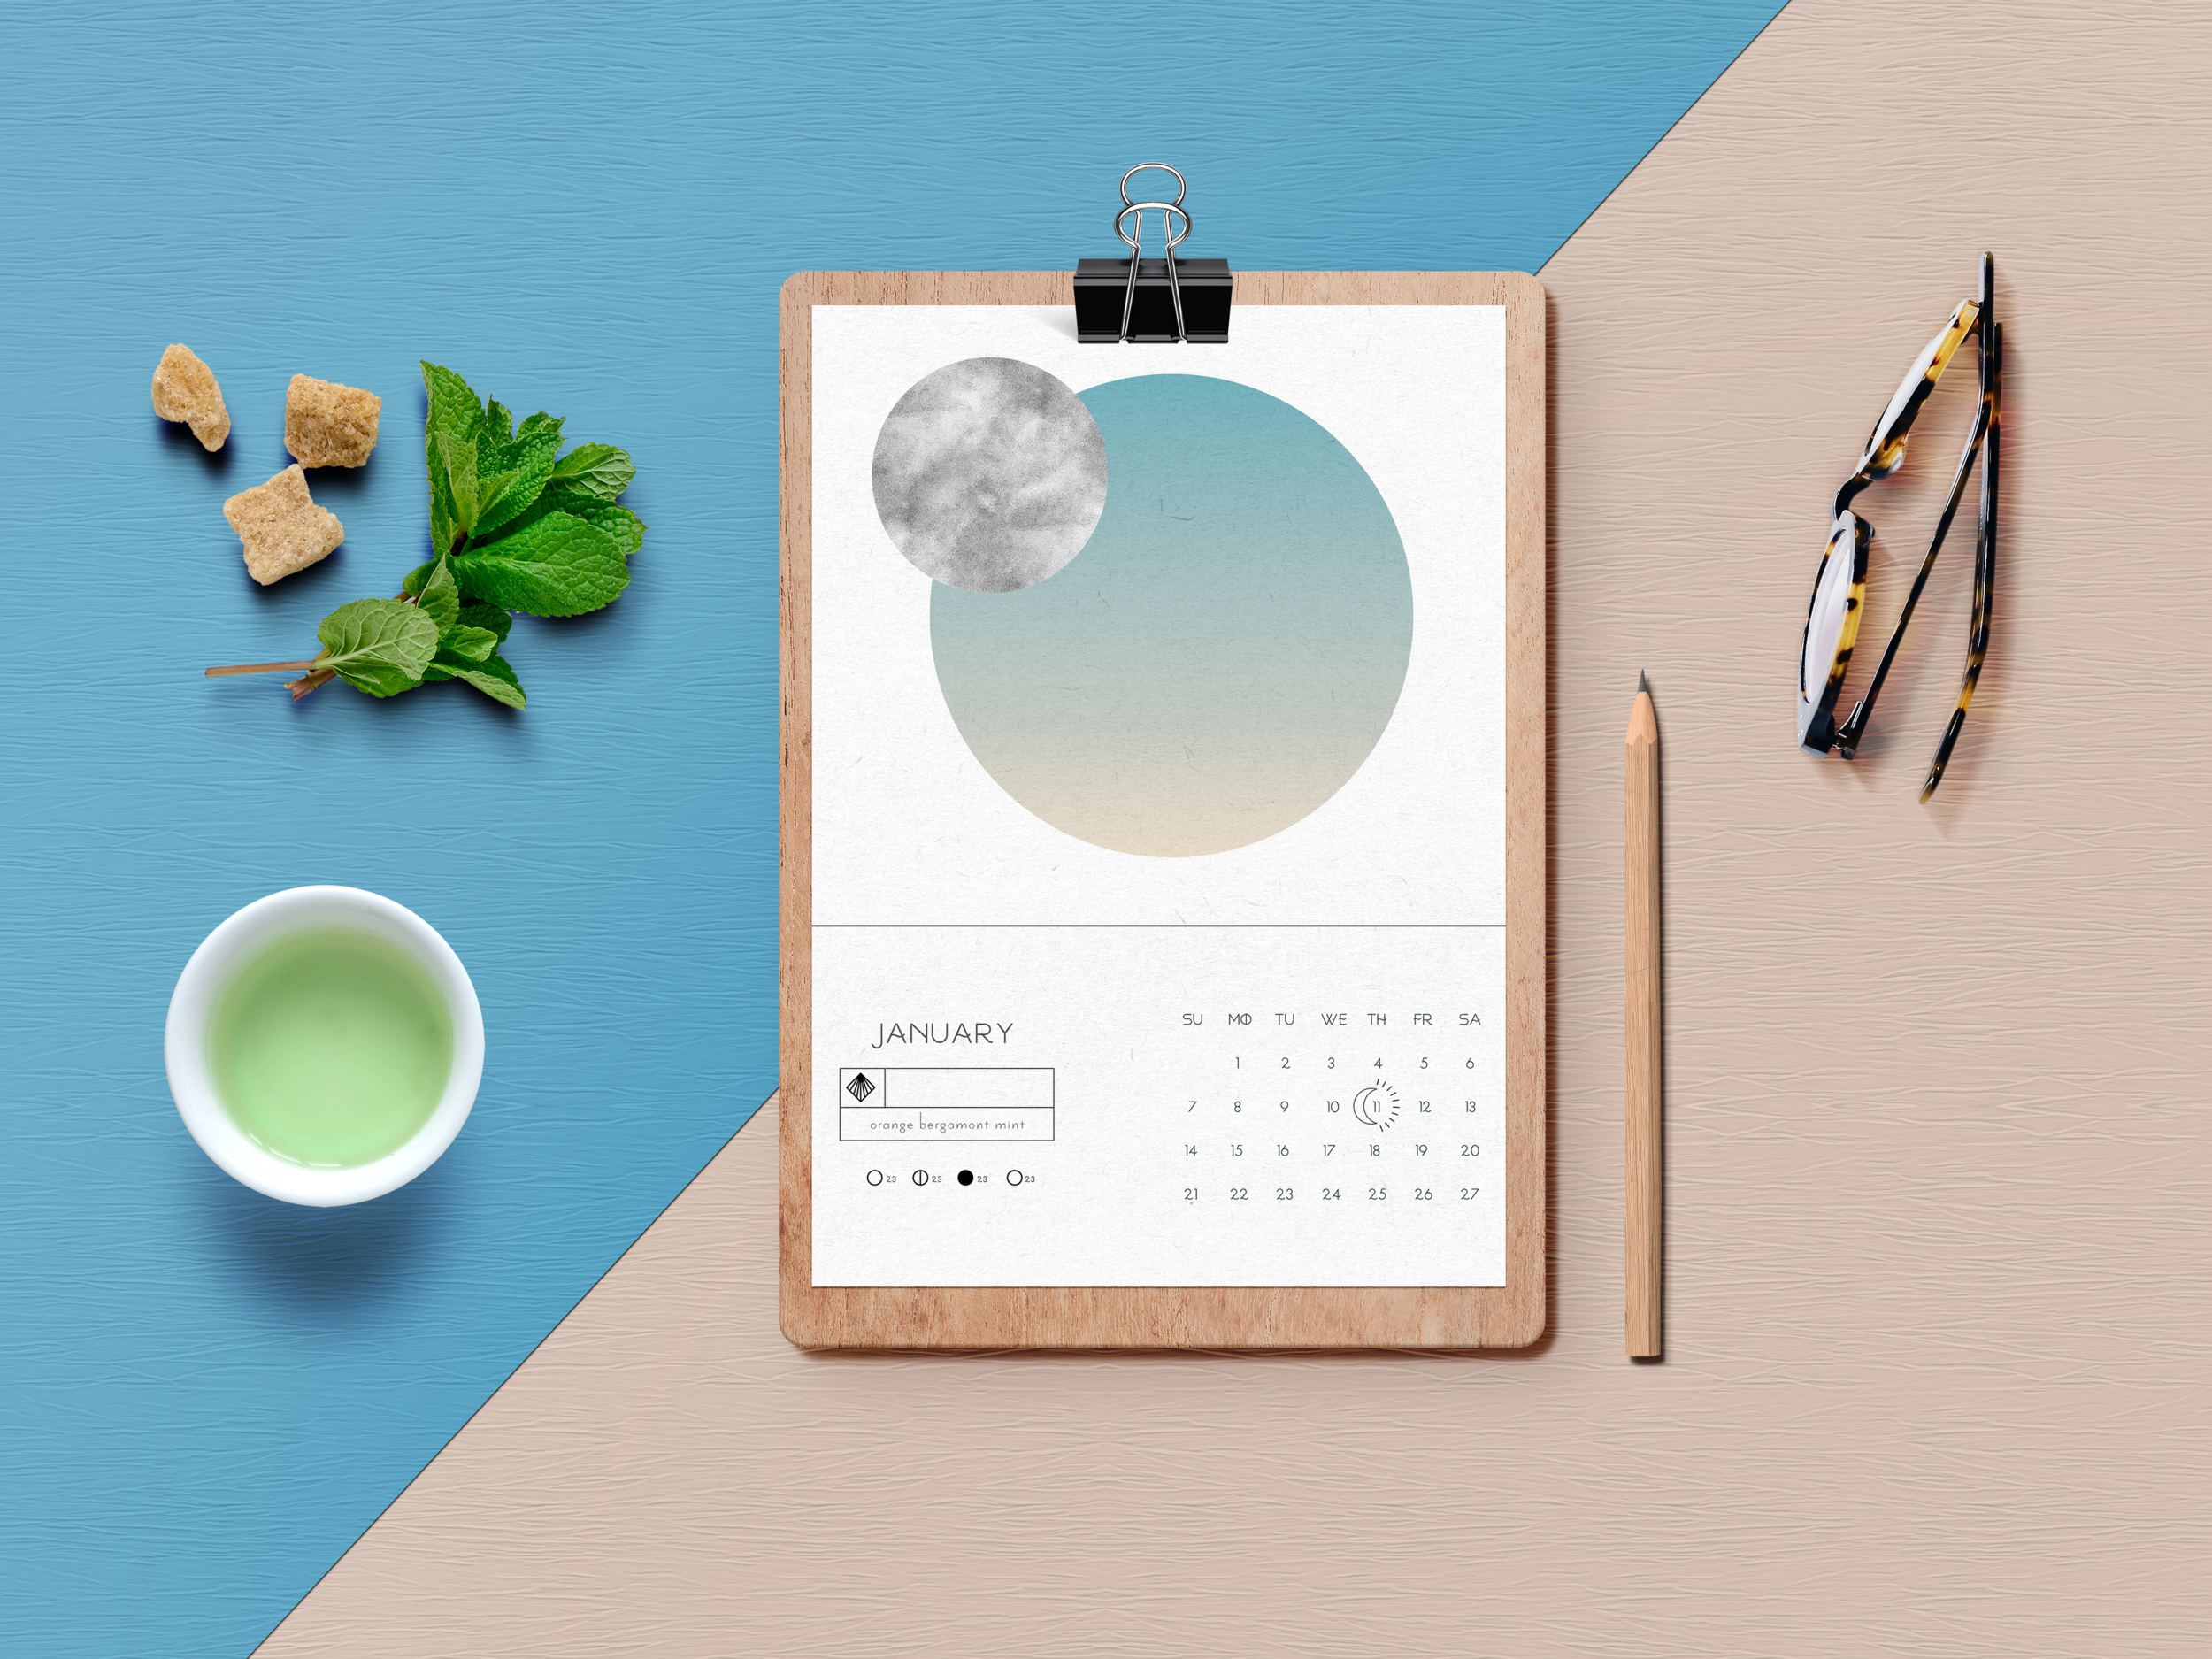 Calendar Concept For Seed Company